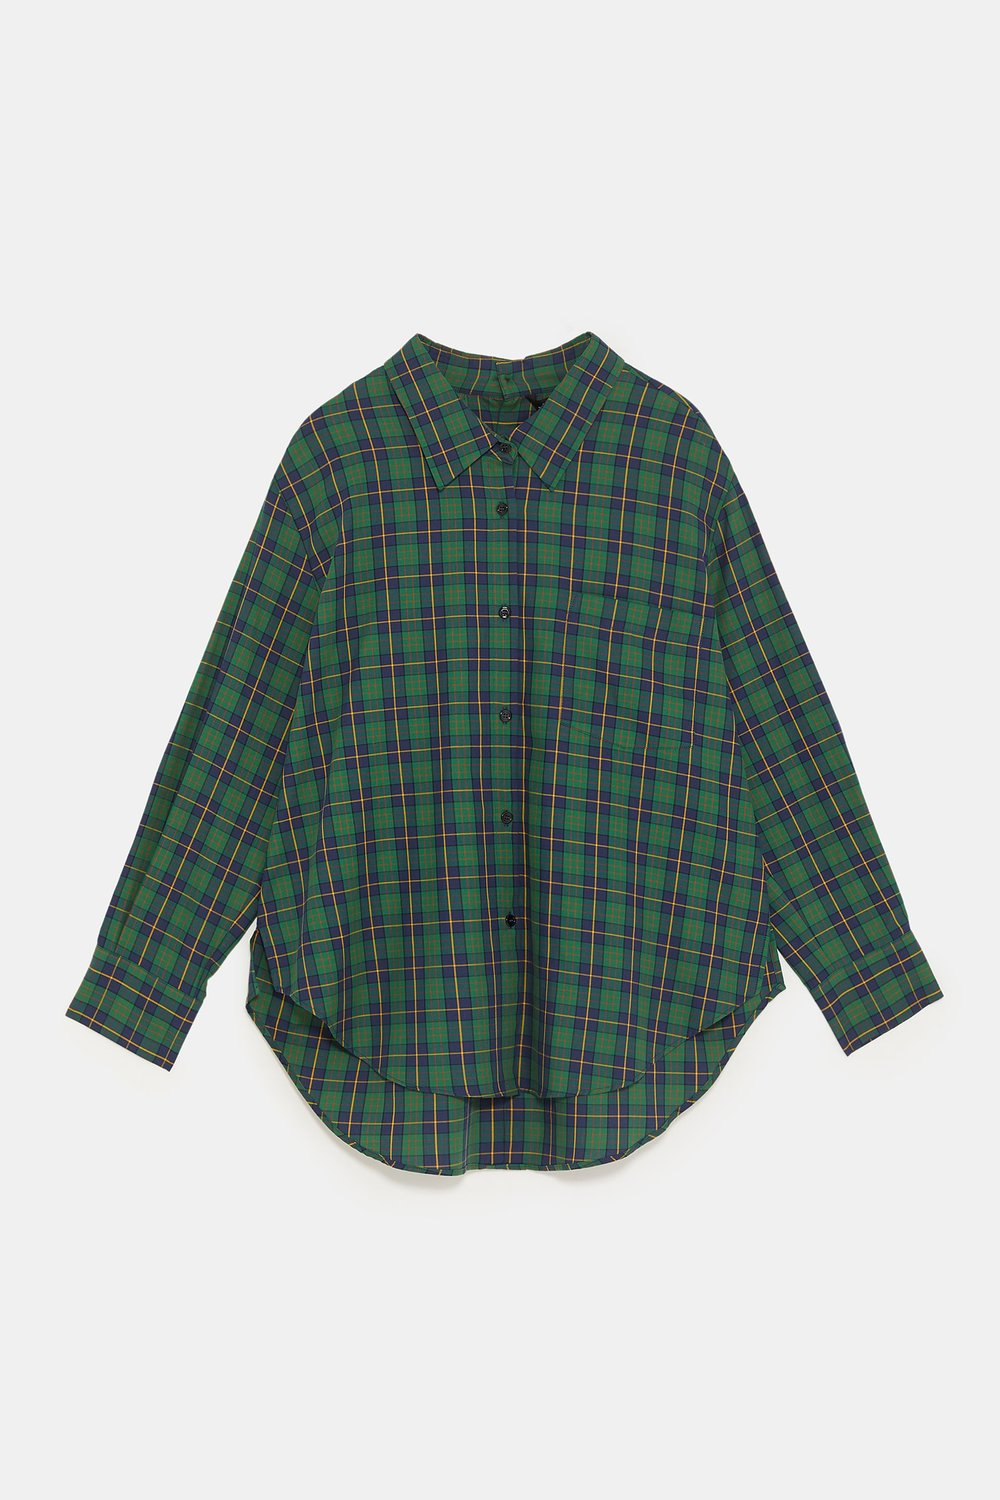 https://www.zara.com/ca/en/plaid-shirt-p04043254.html?v1=6963530&v2=1074623